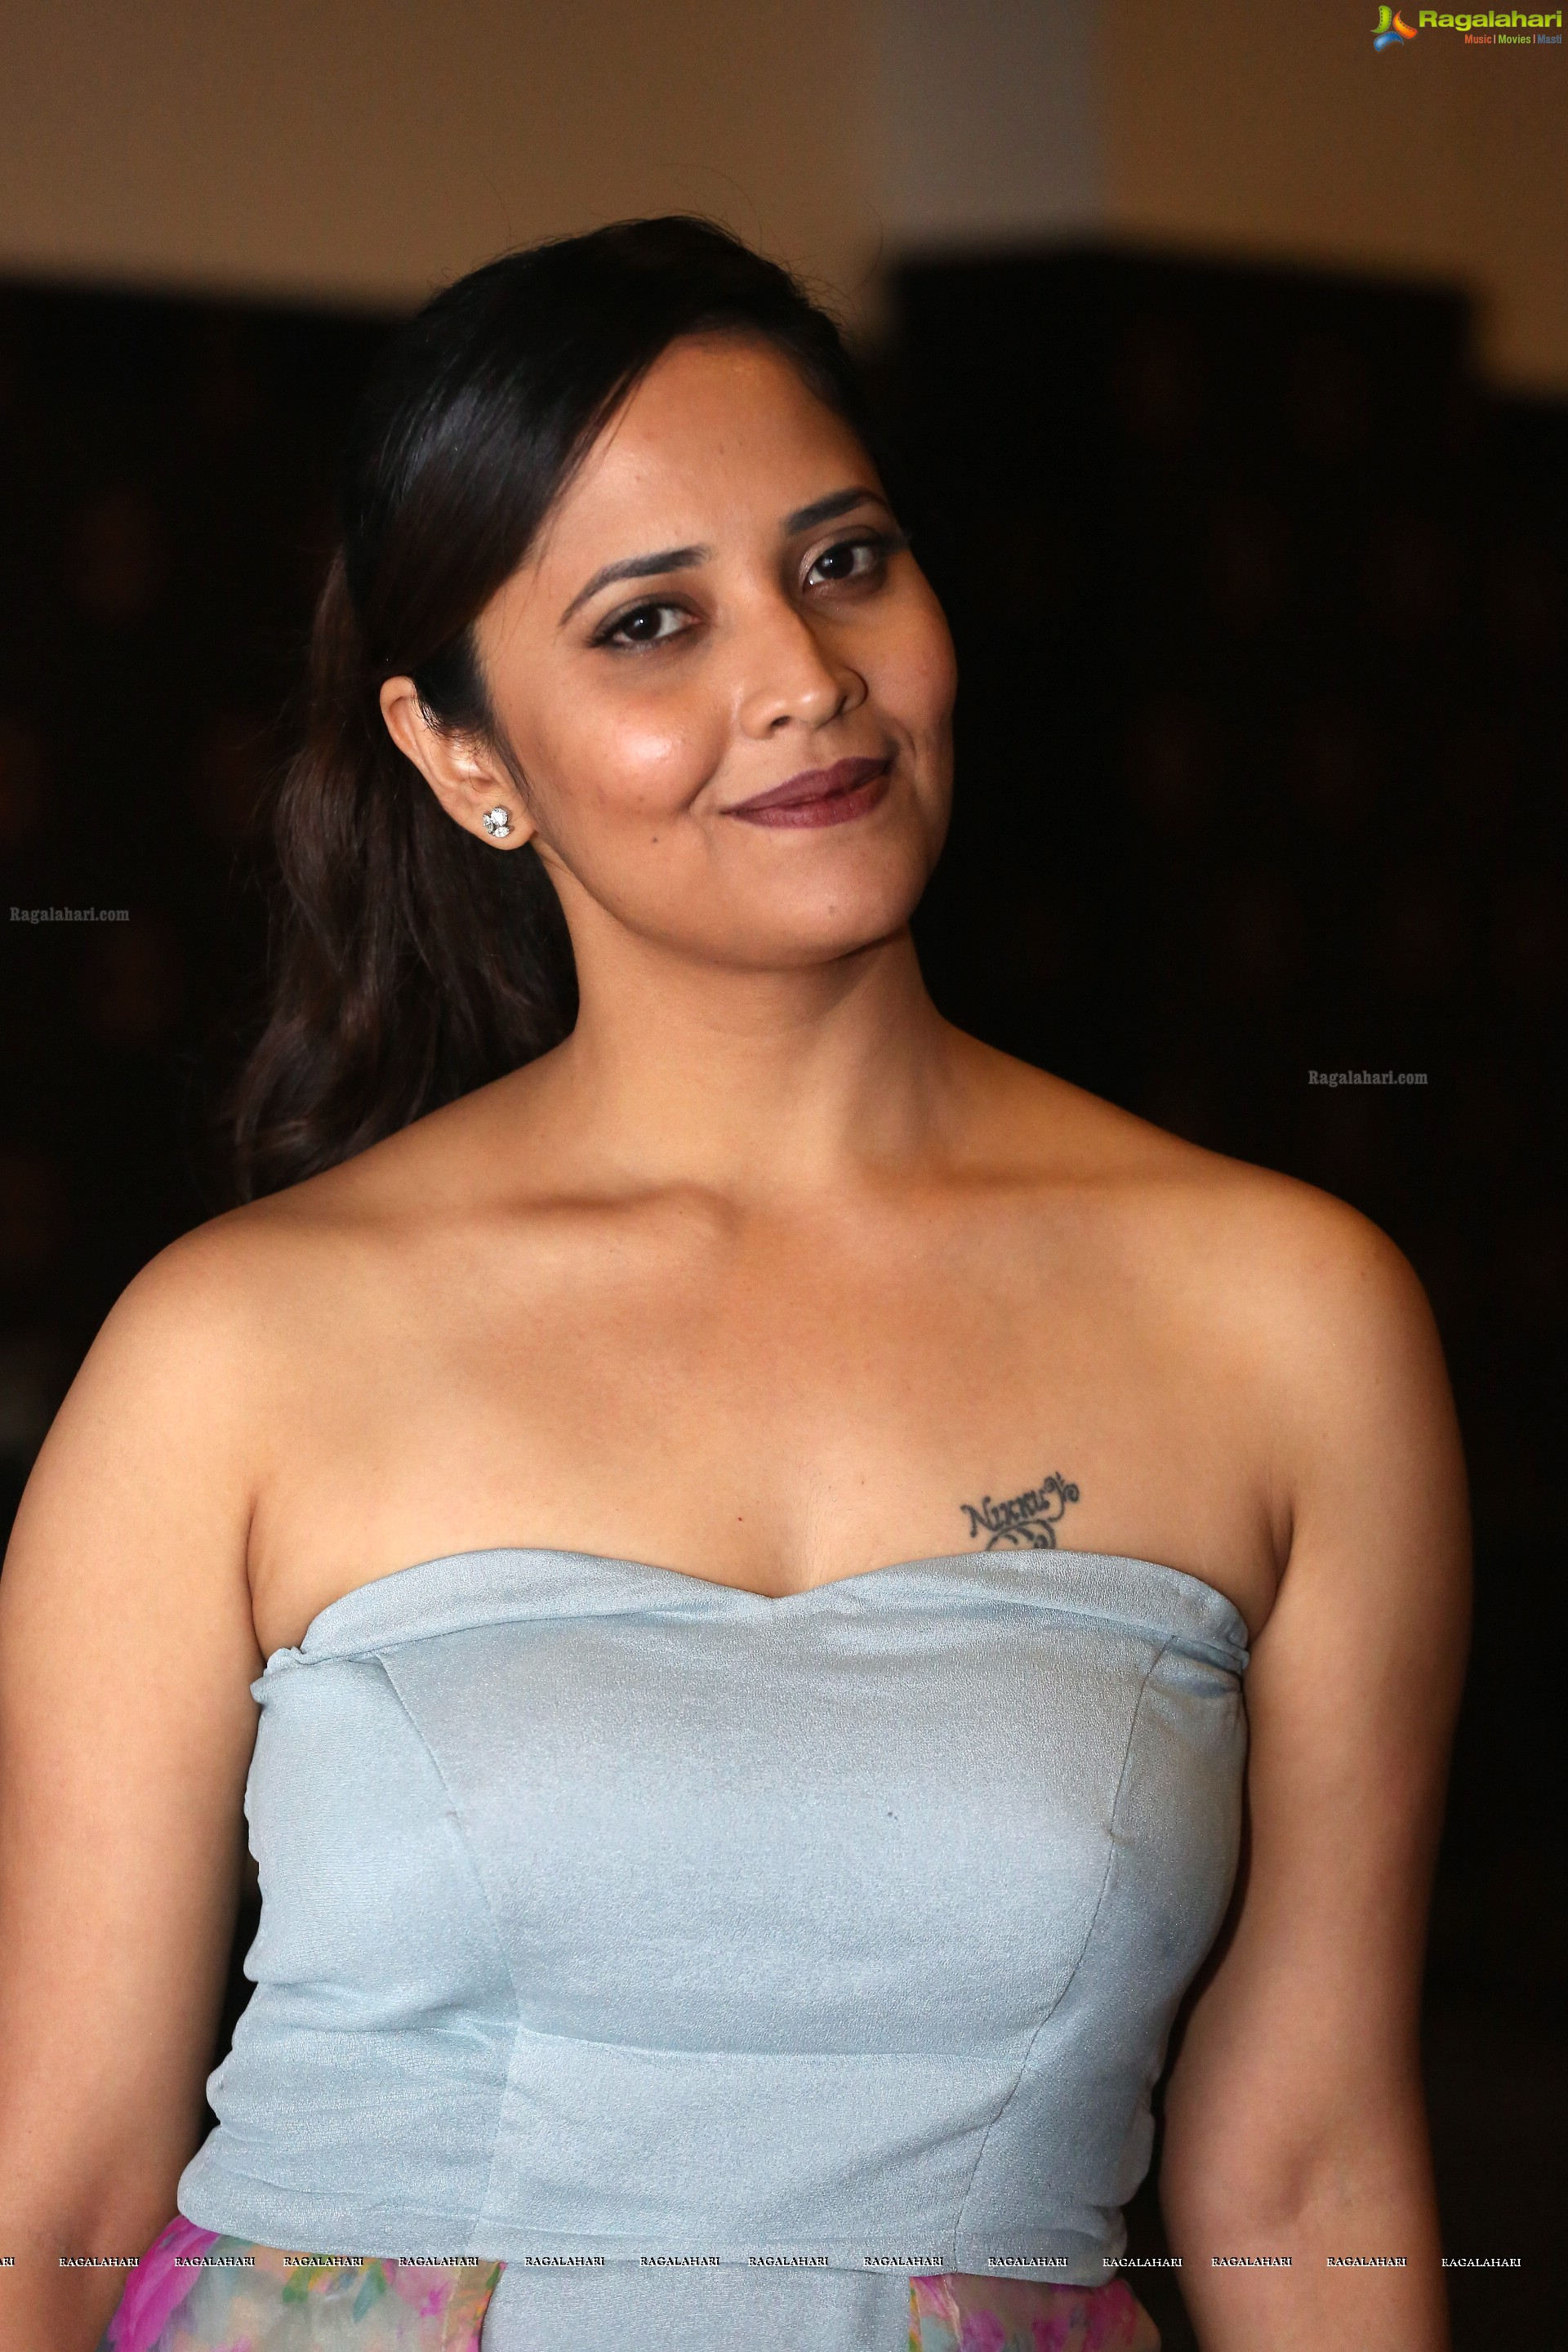 What does Anasuya's tattoo mean?